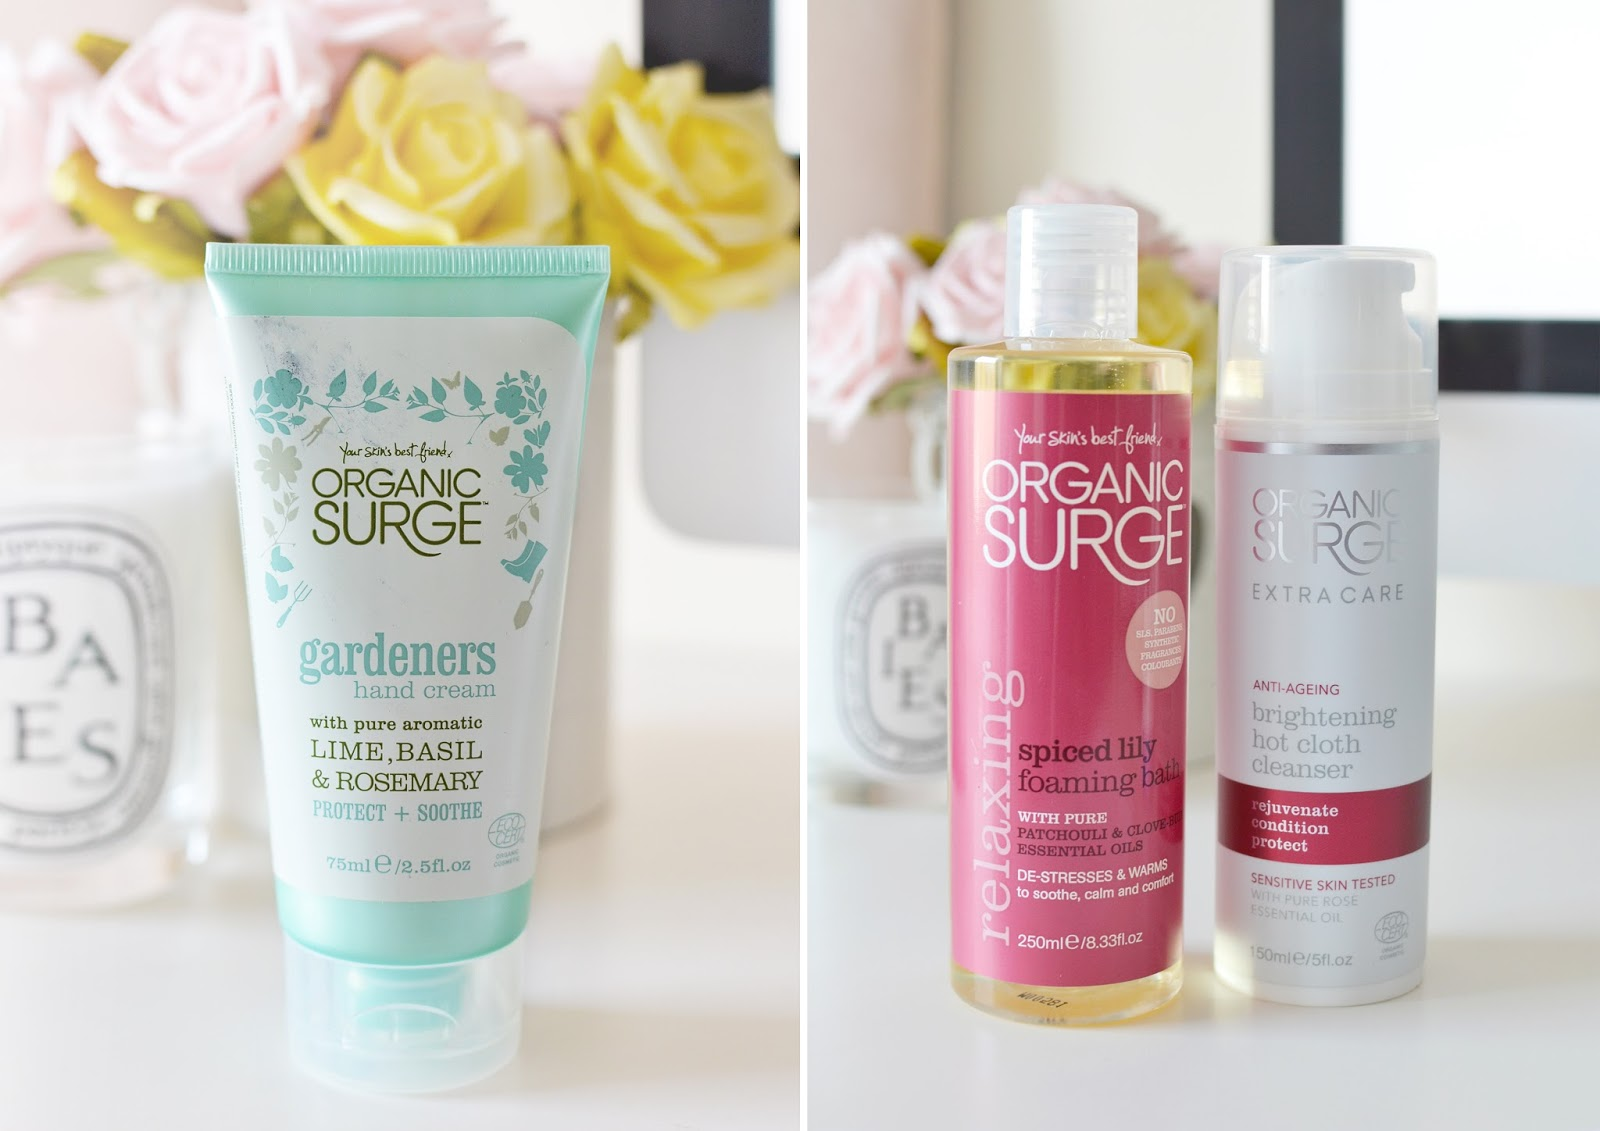 organic surge bloggers bundle, beauty products